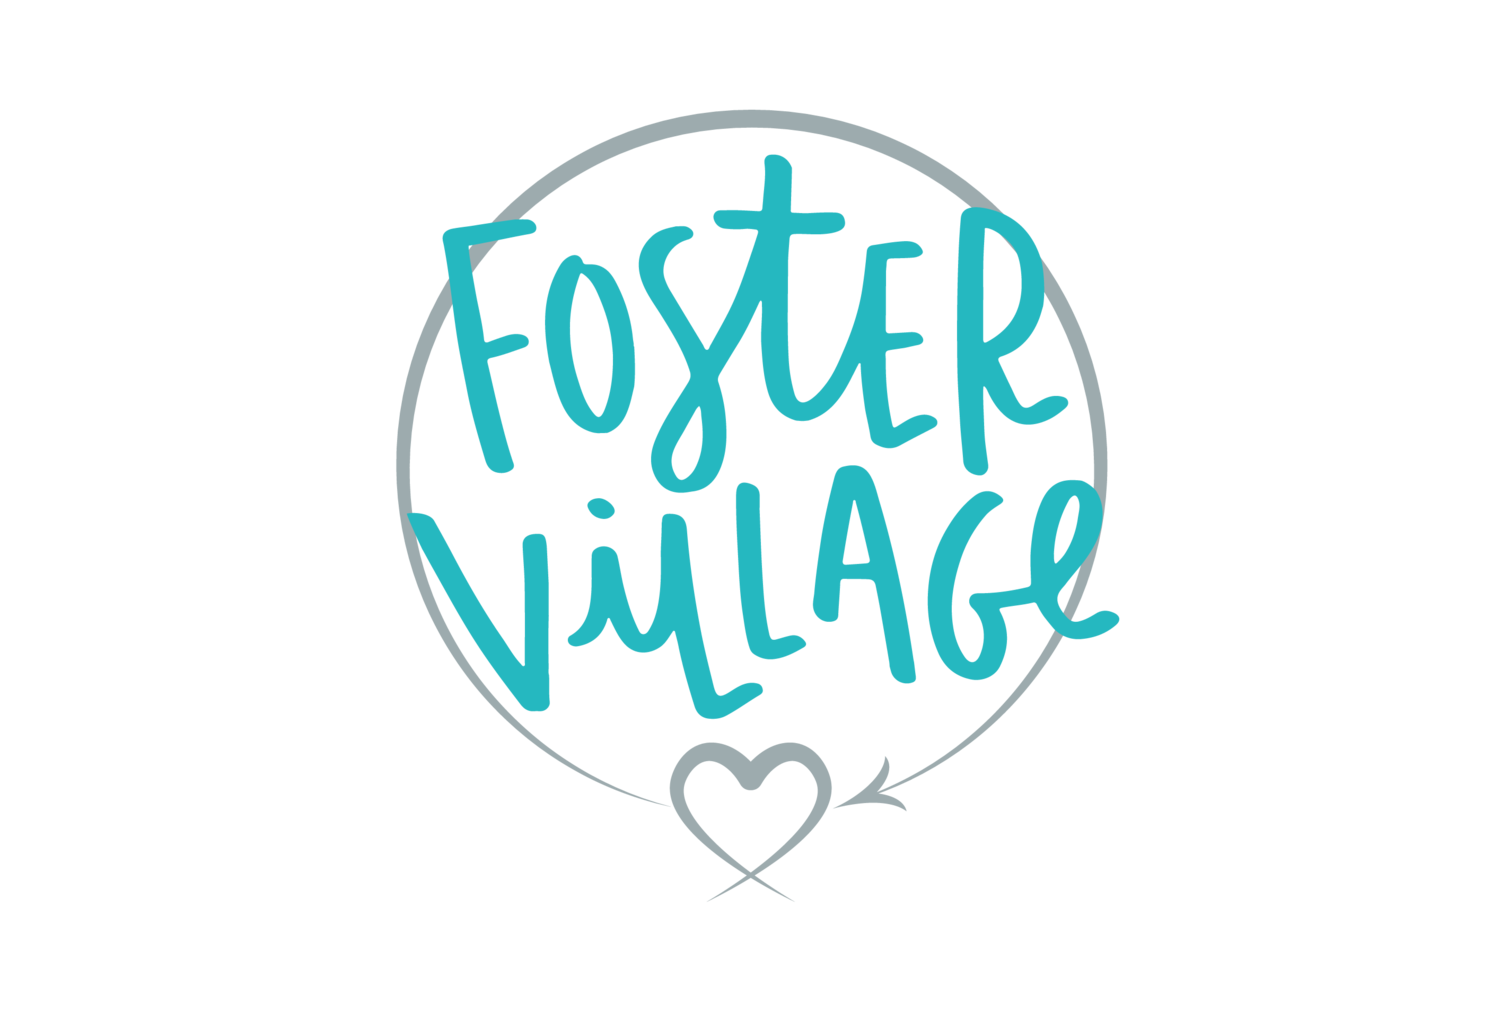 Foster Village.png